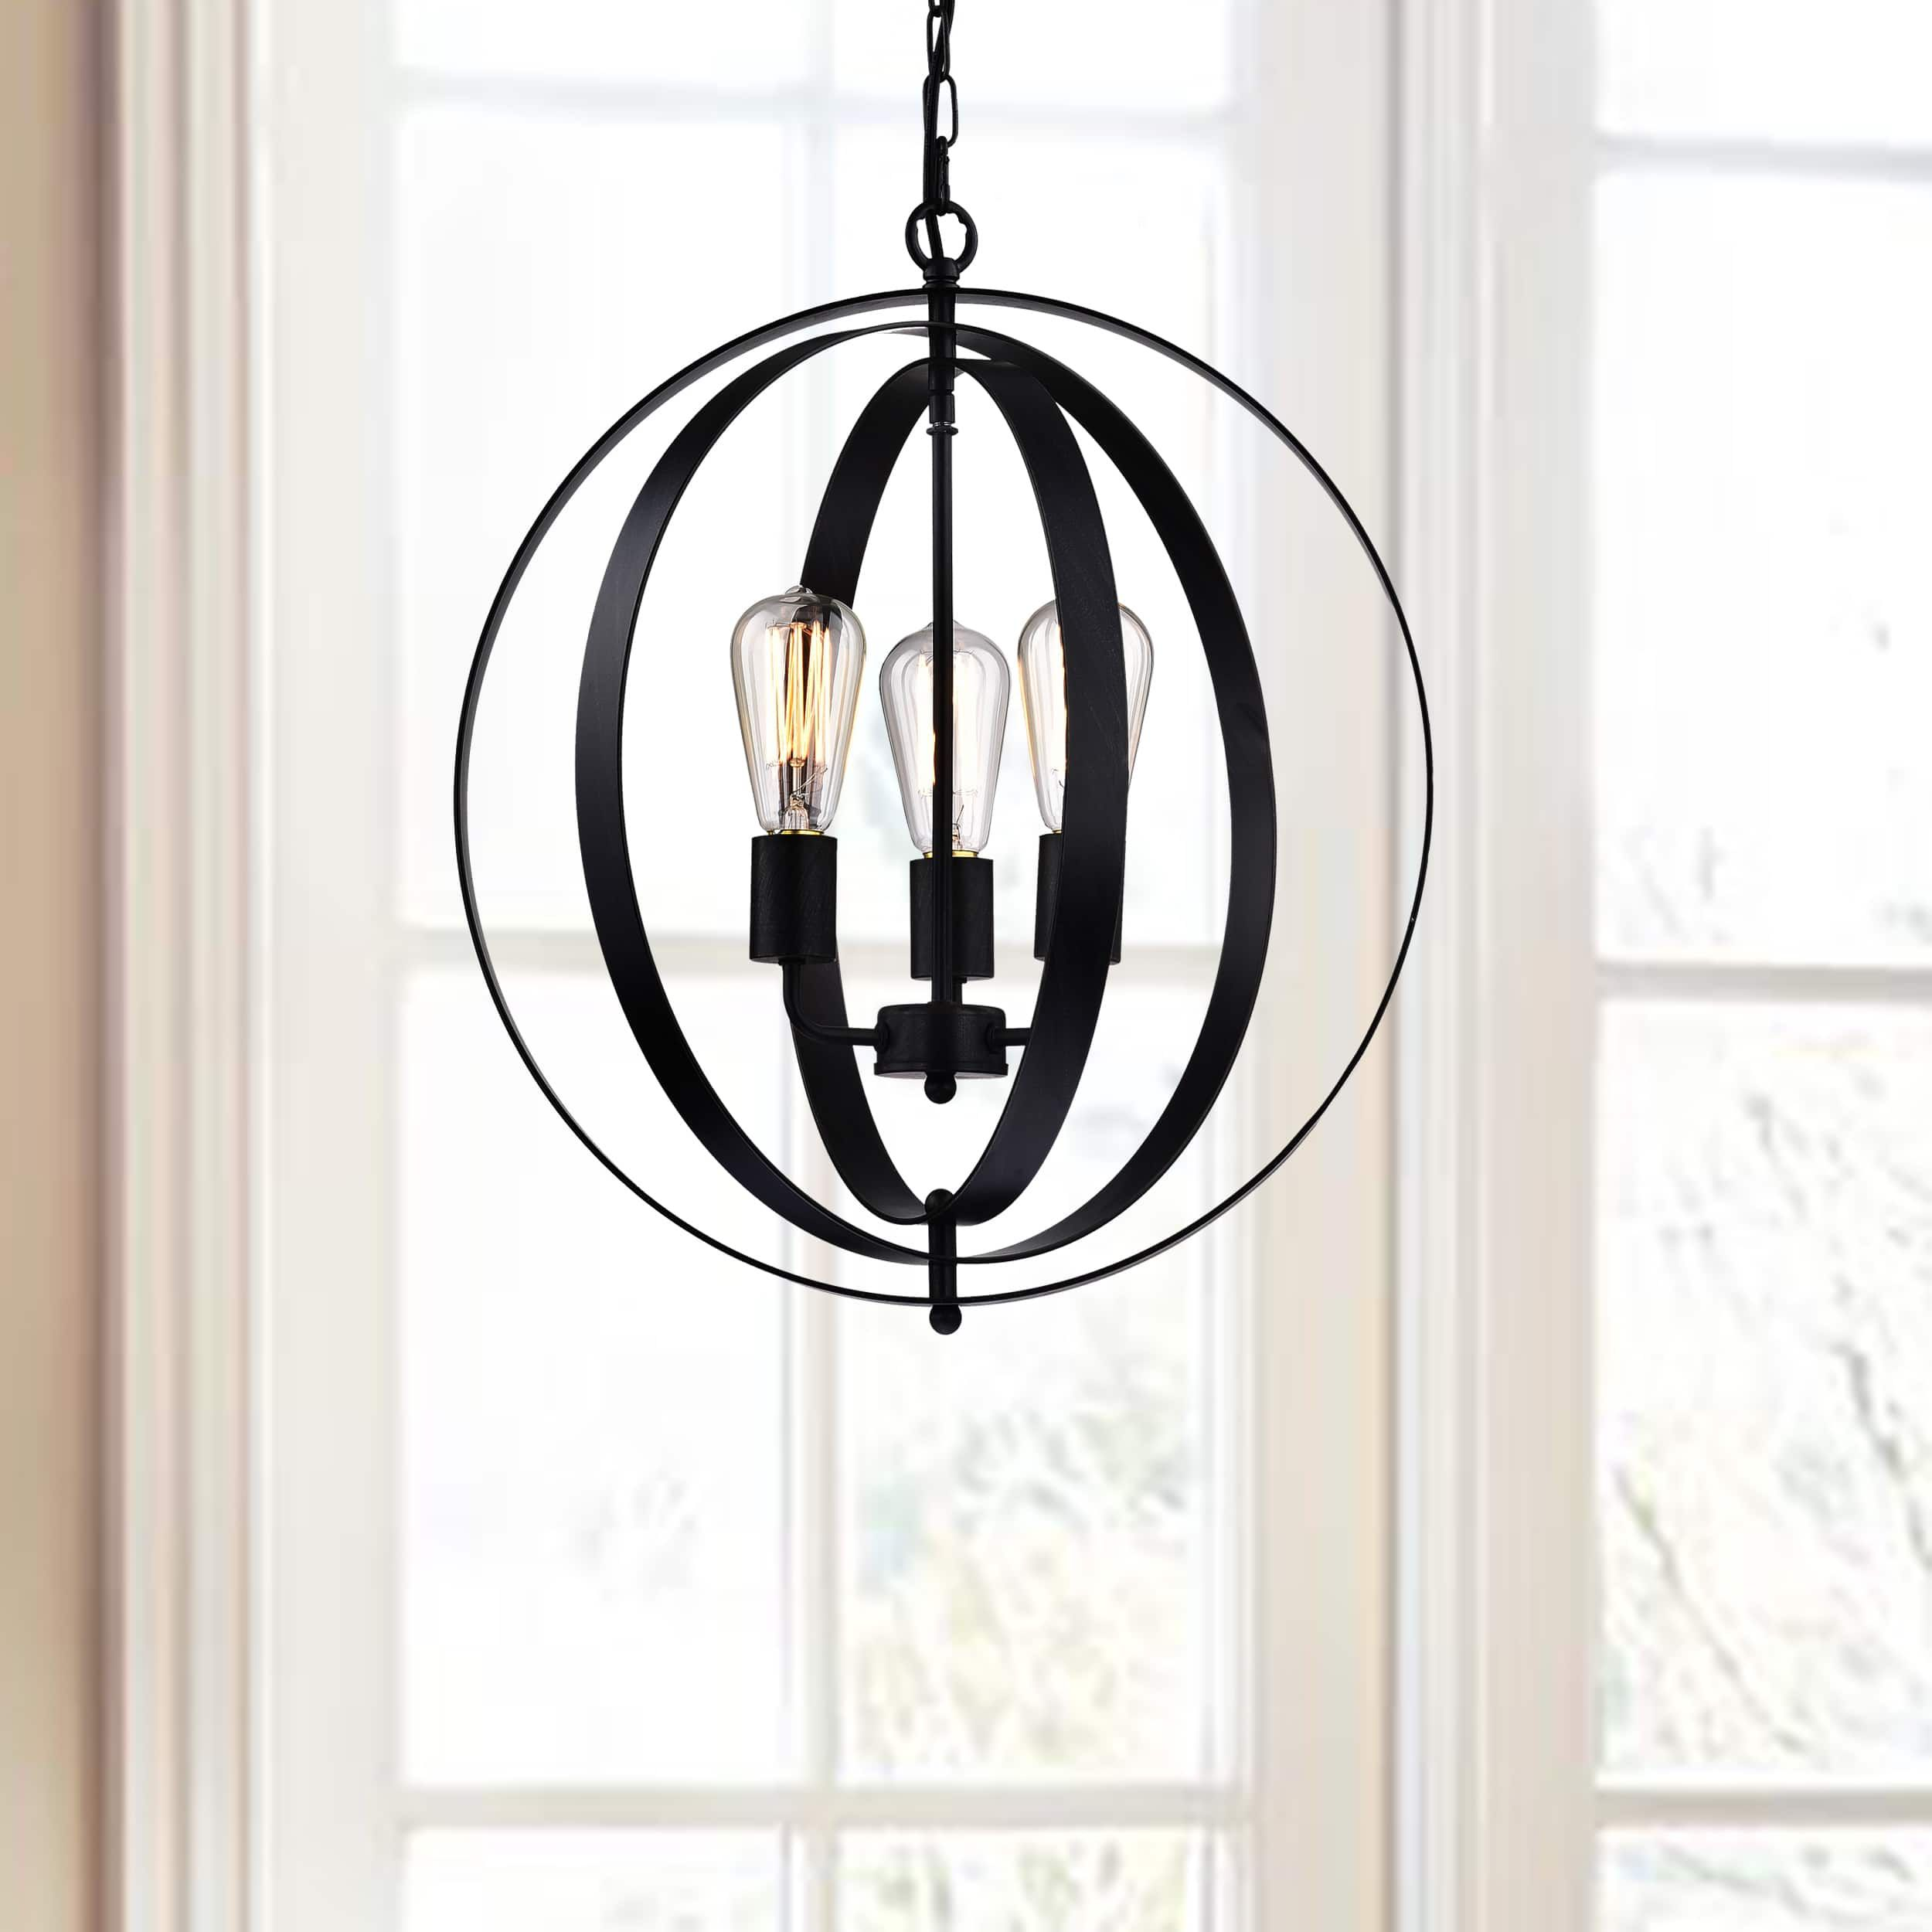 Benita Antique Black 3 light Concentric Mixed Iron Rings Orb